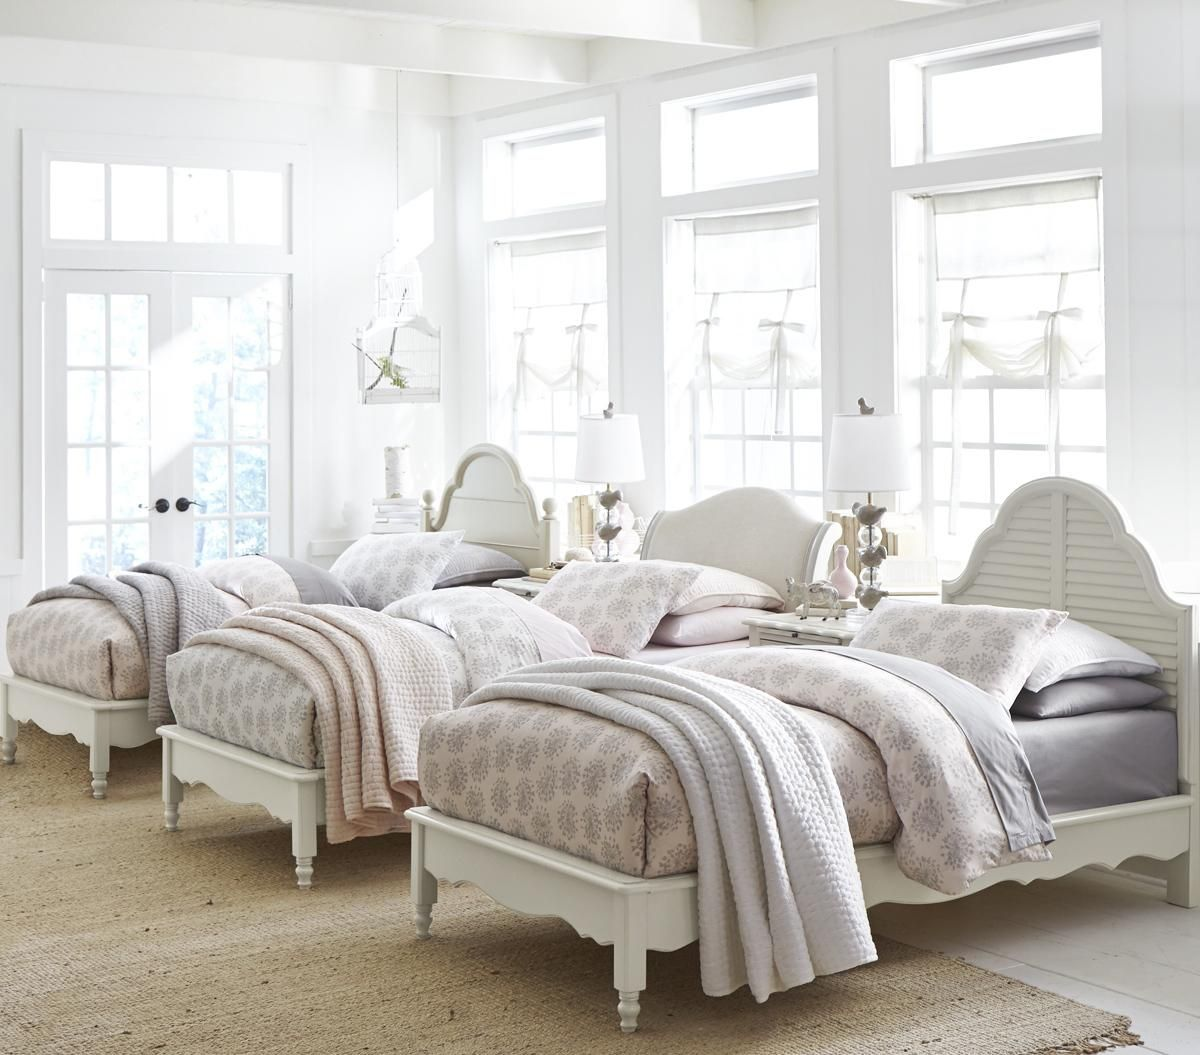 Beautiful Bedroom For A Room For Multiple Children